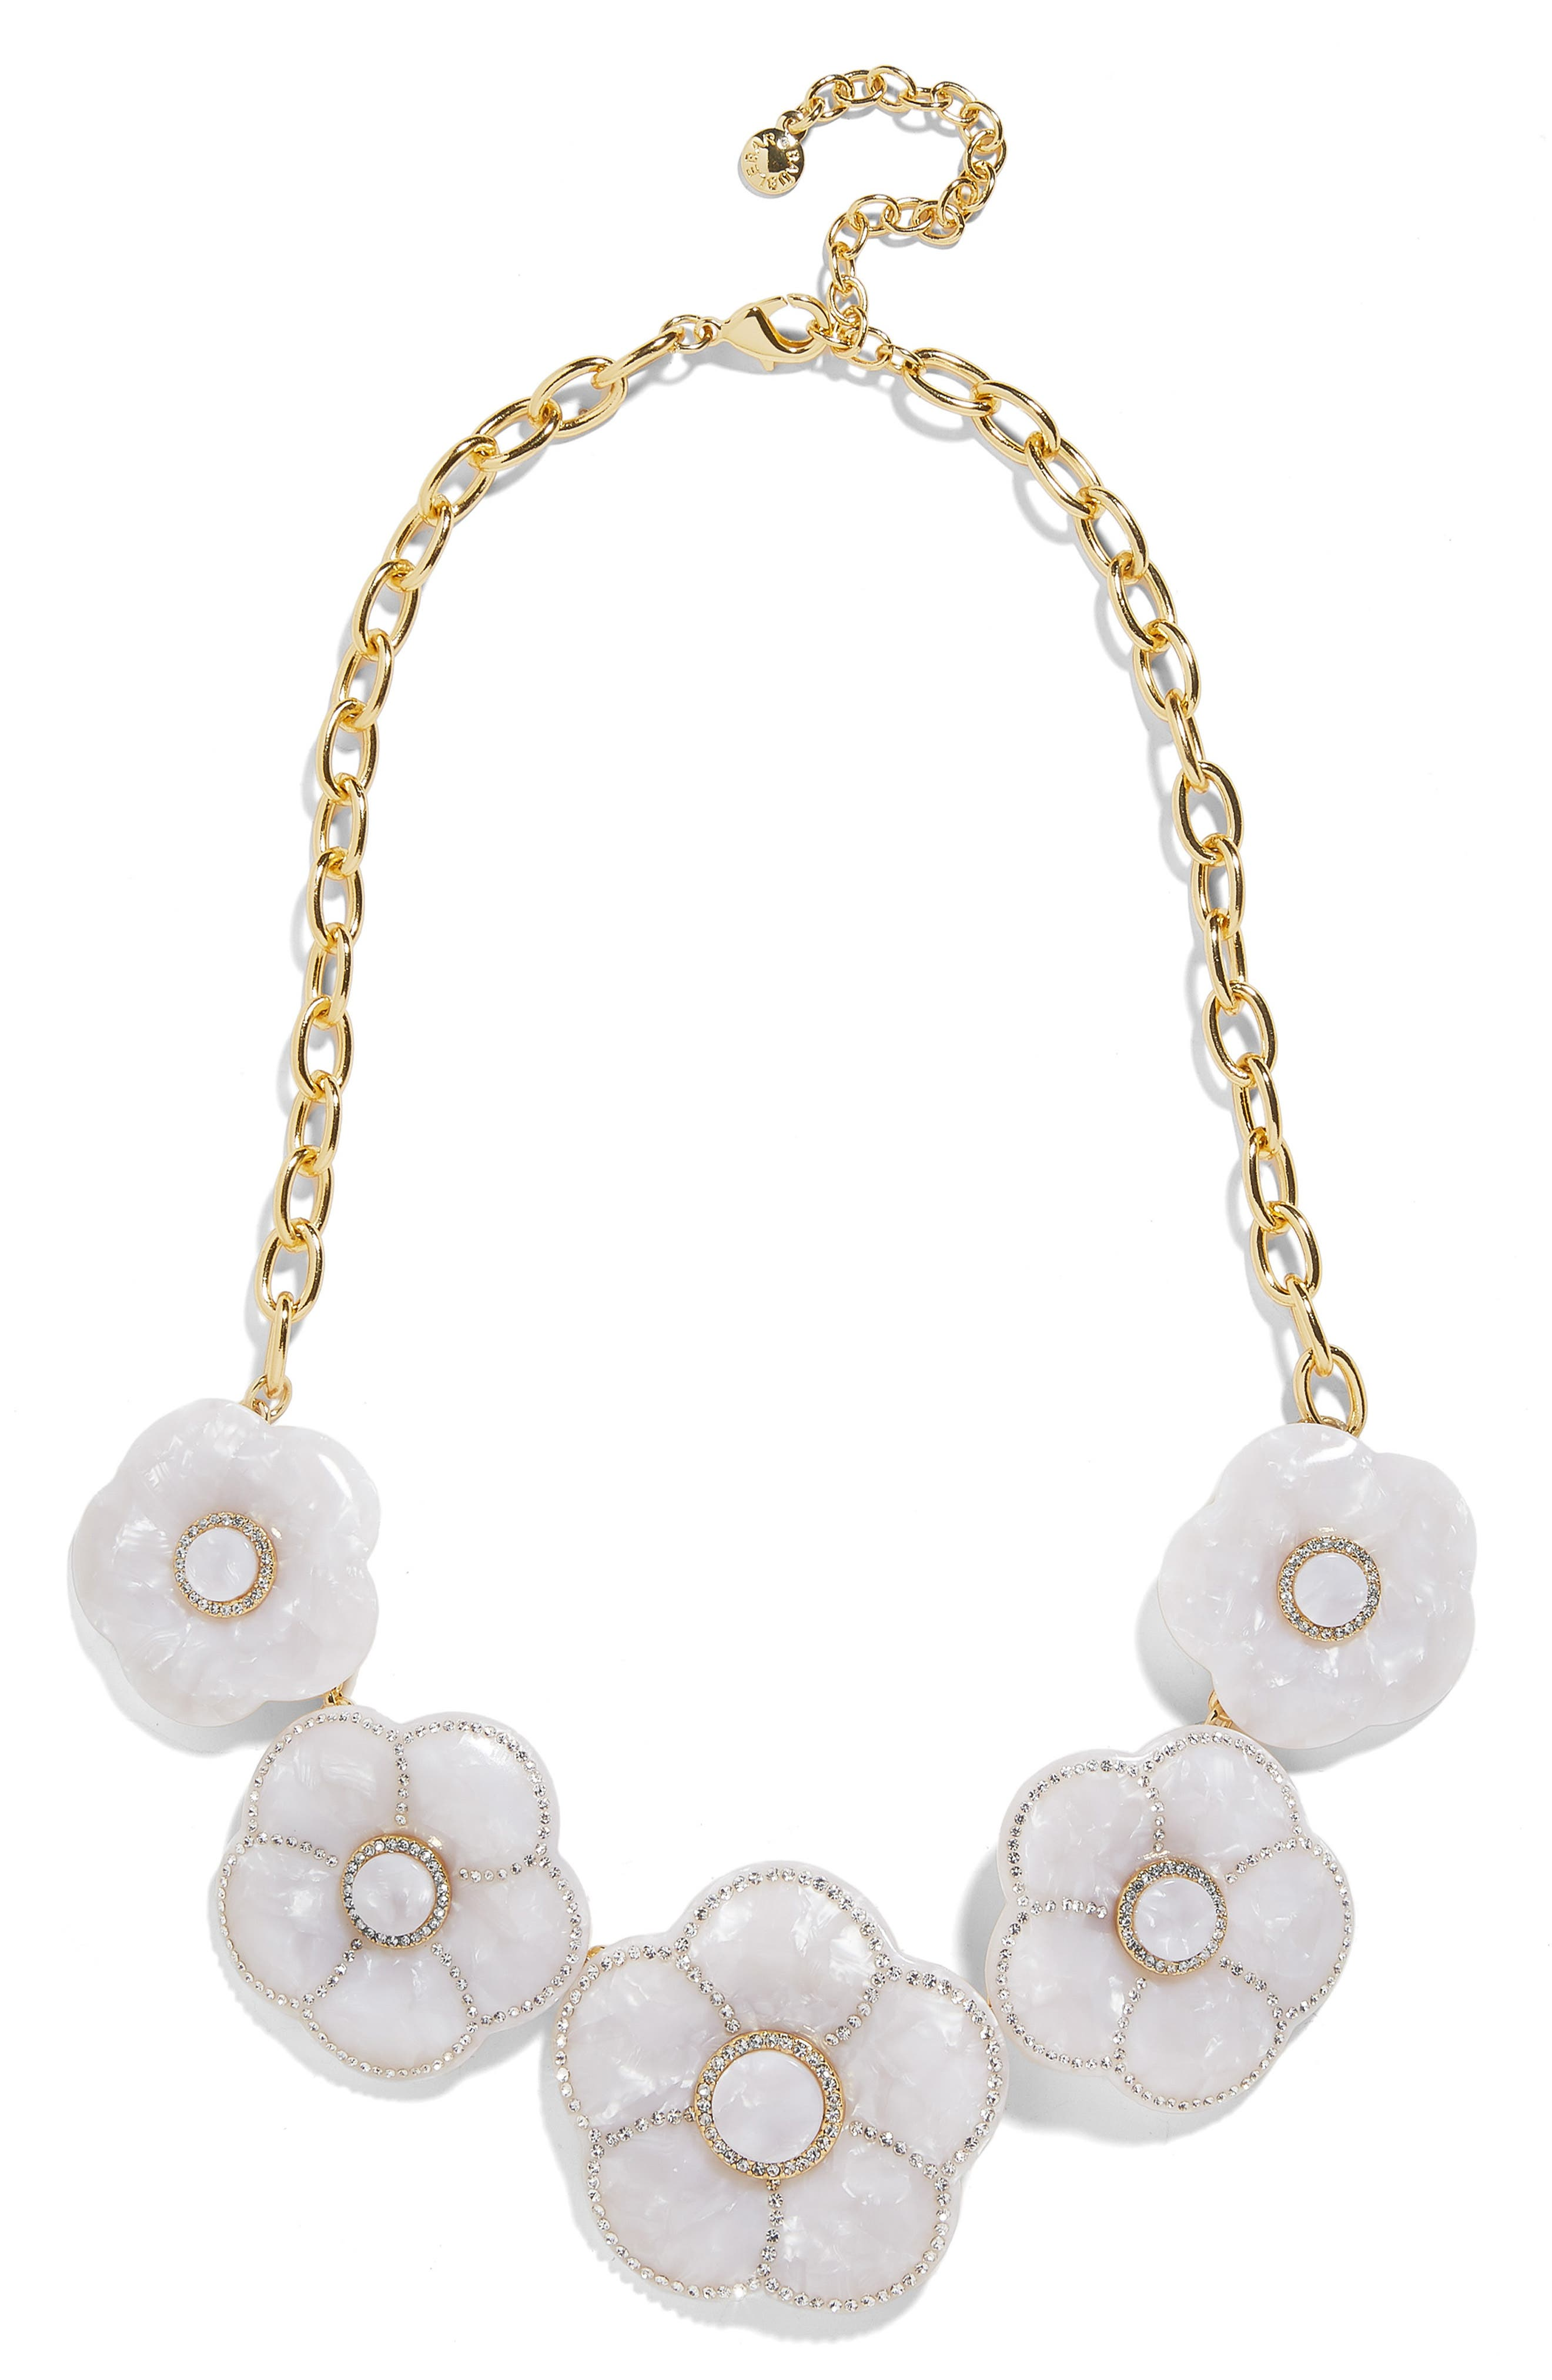 BAUBLEBAR Madelaina Resin Flower Necklace, Main, color, WHITE